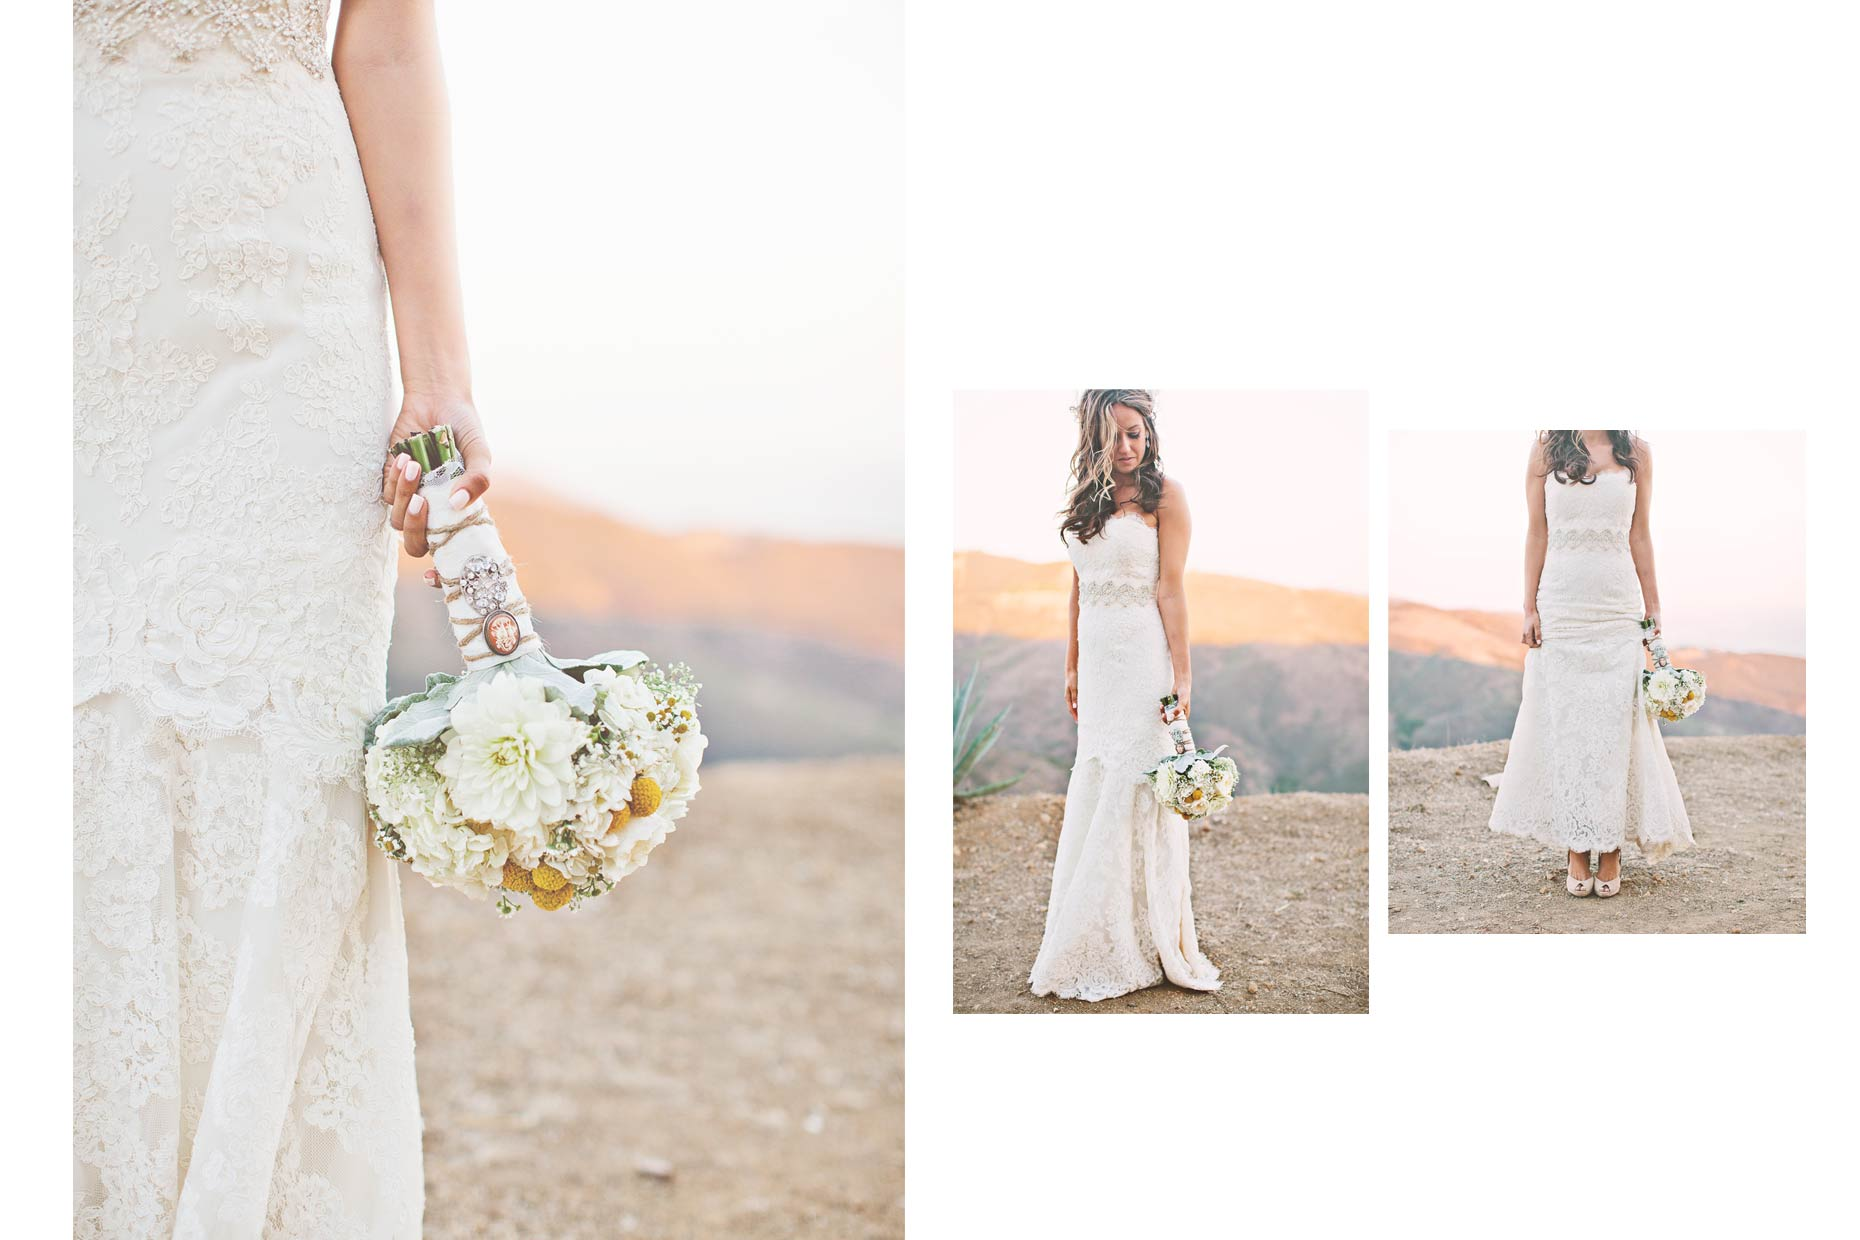 malibu wedding photographer Ojai wedding photographer Pierre-olivier Photography Malibu Wedding